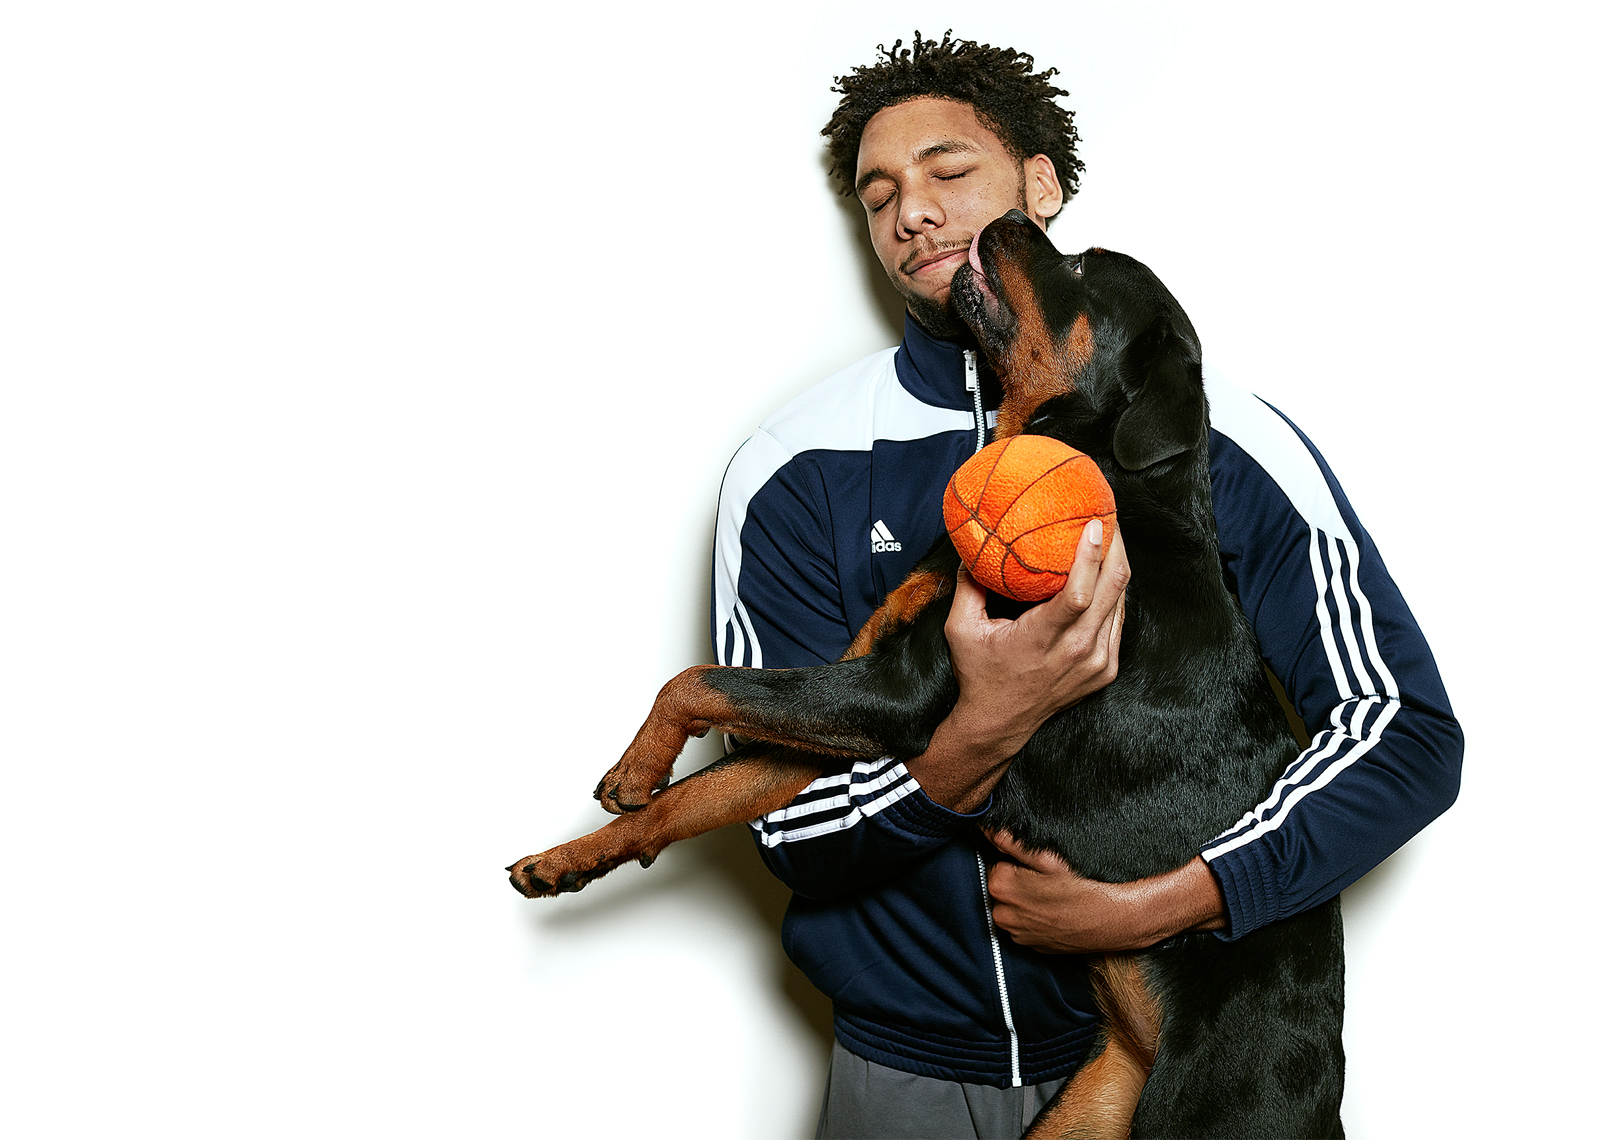 Sports Photographer STEVE BOYLE - Jahlil Okafor